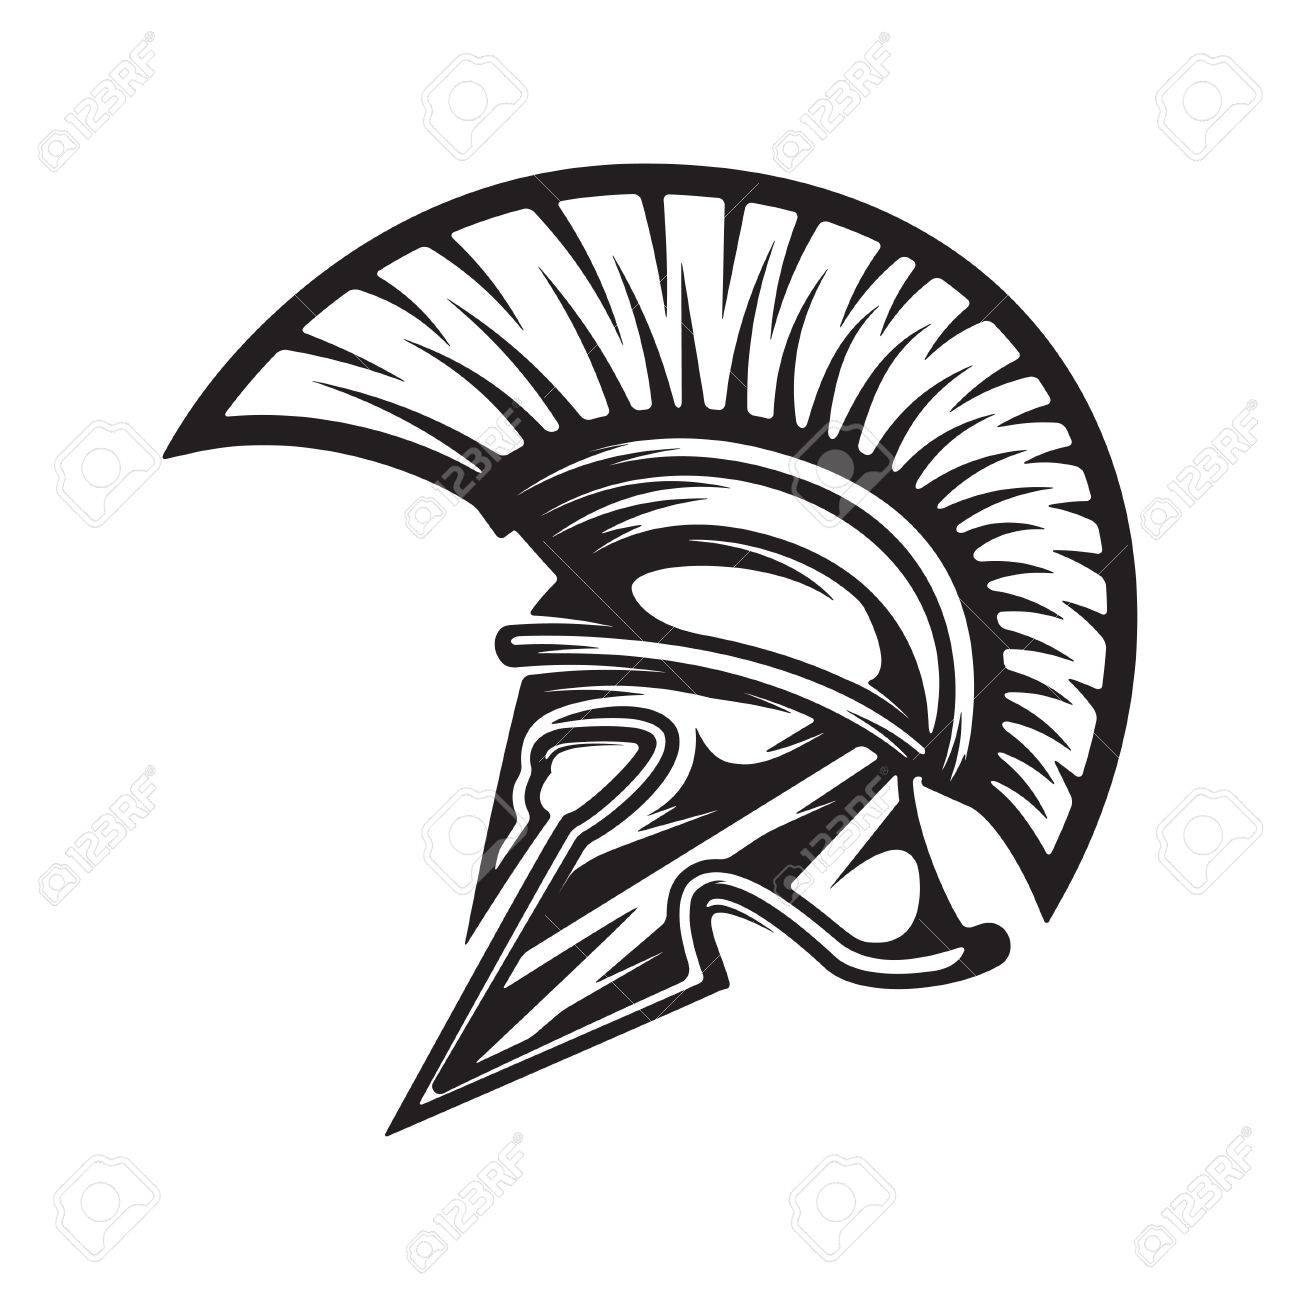 spartan helmet military emblem design element for logo label rh 123rf com spartan helmet logo non copyright spartan helmet logo design